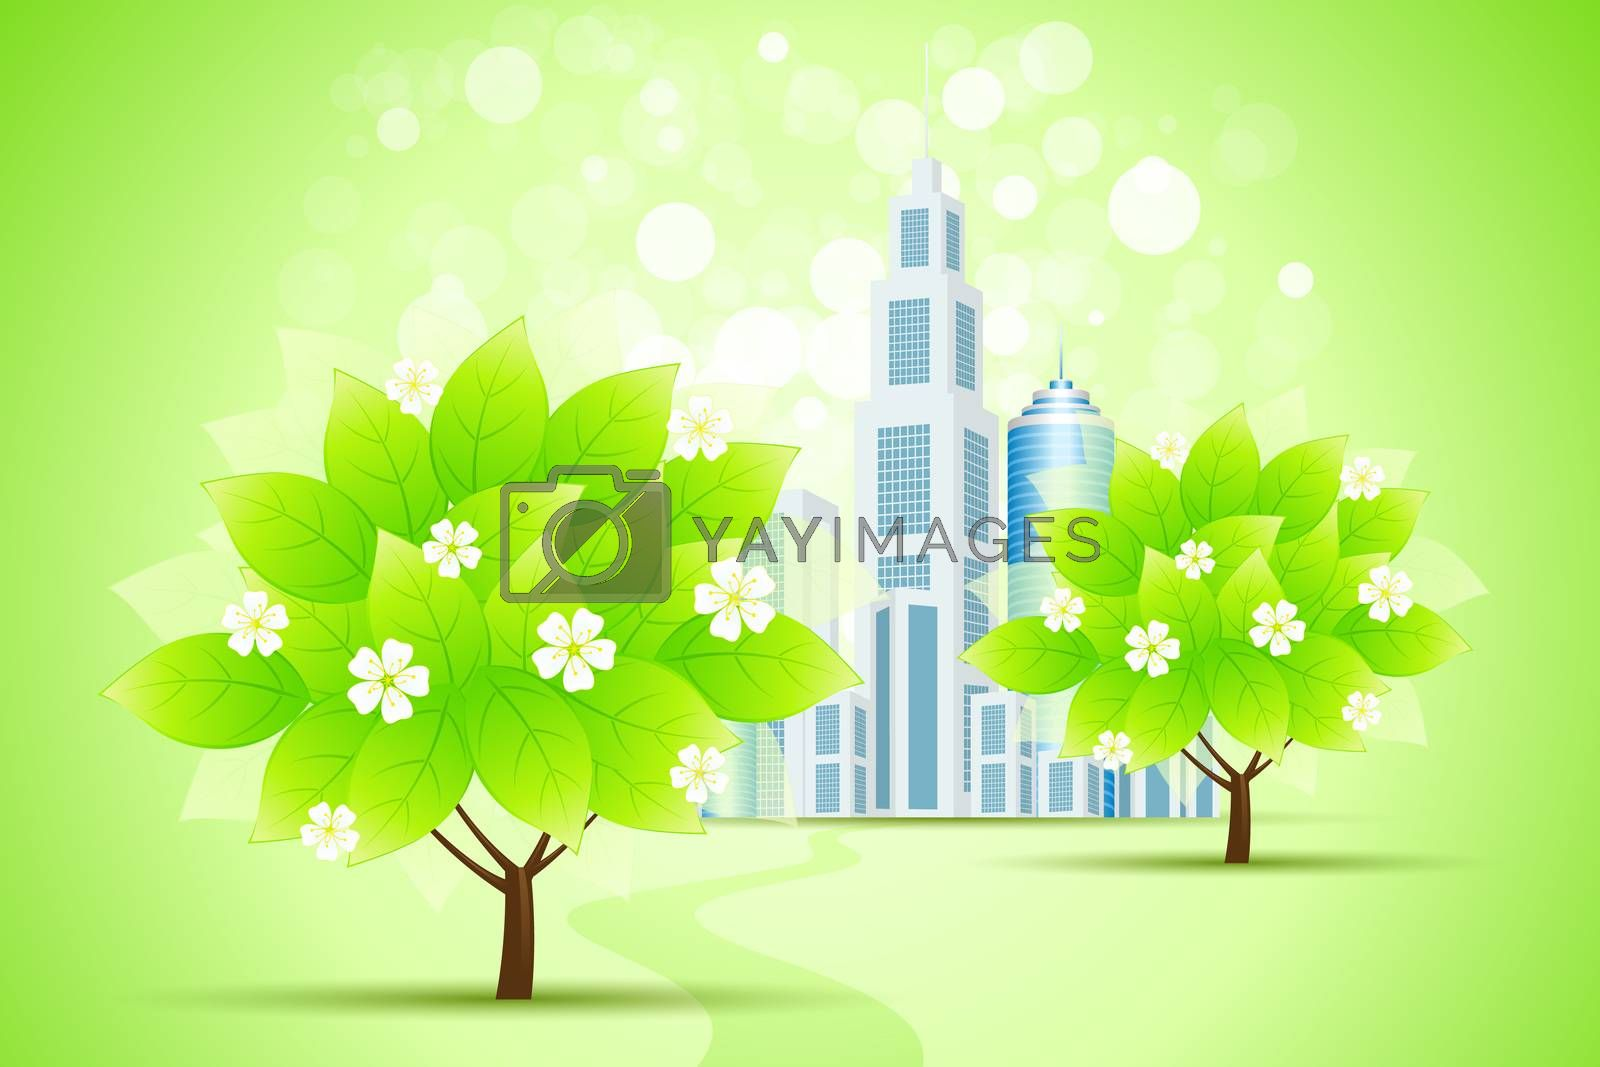 Green Trees and City by WaD